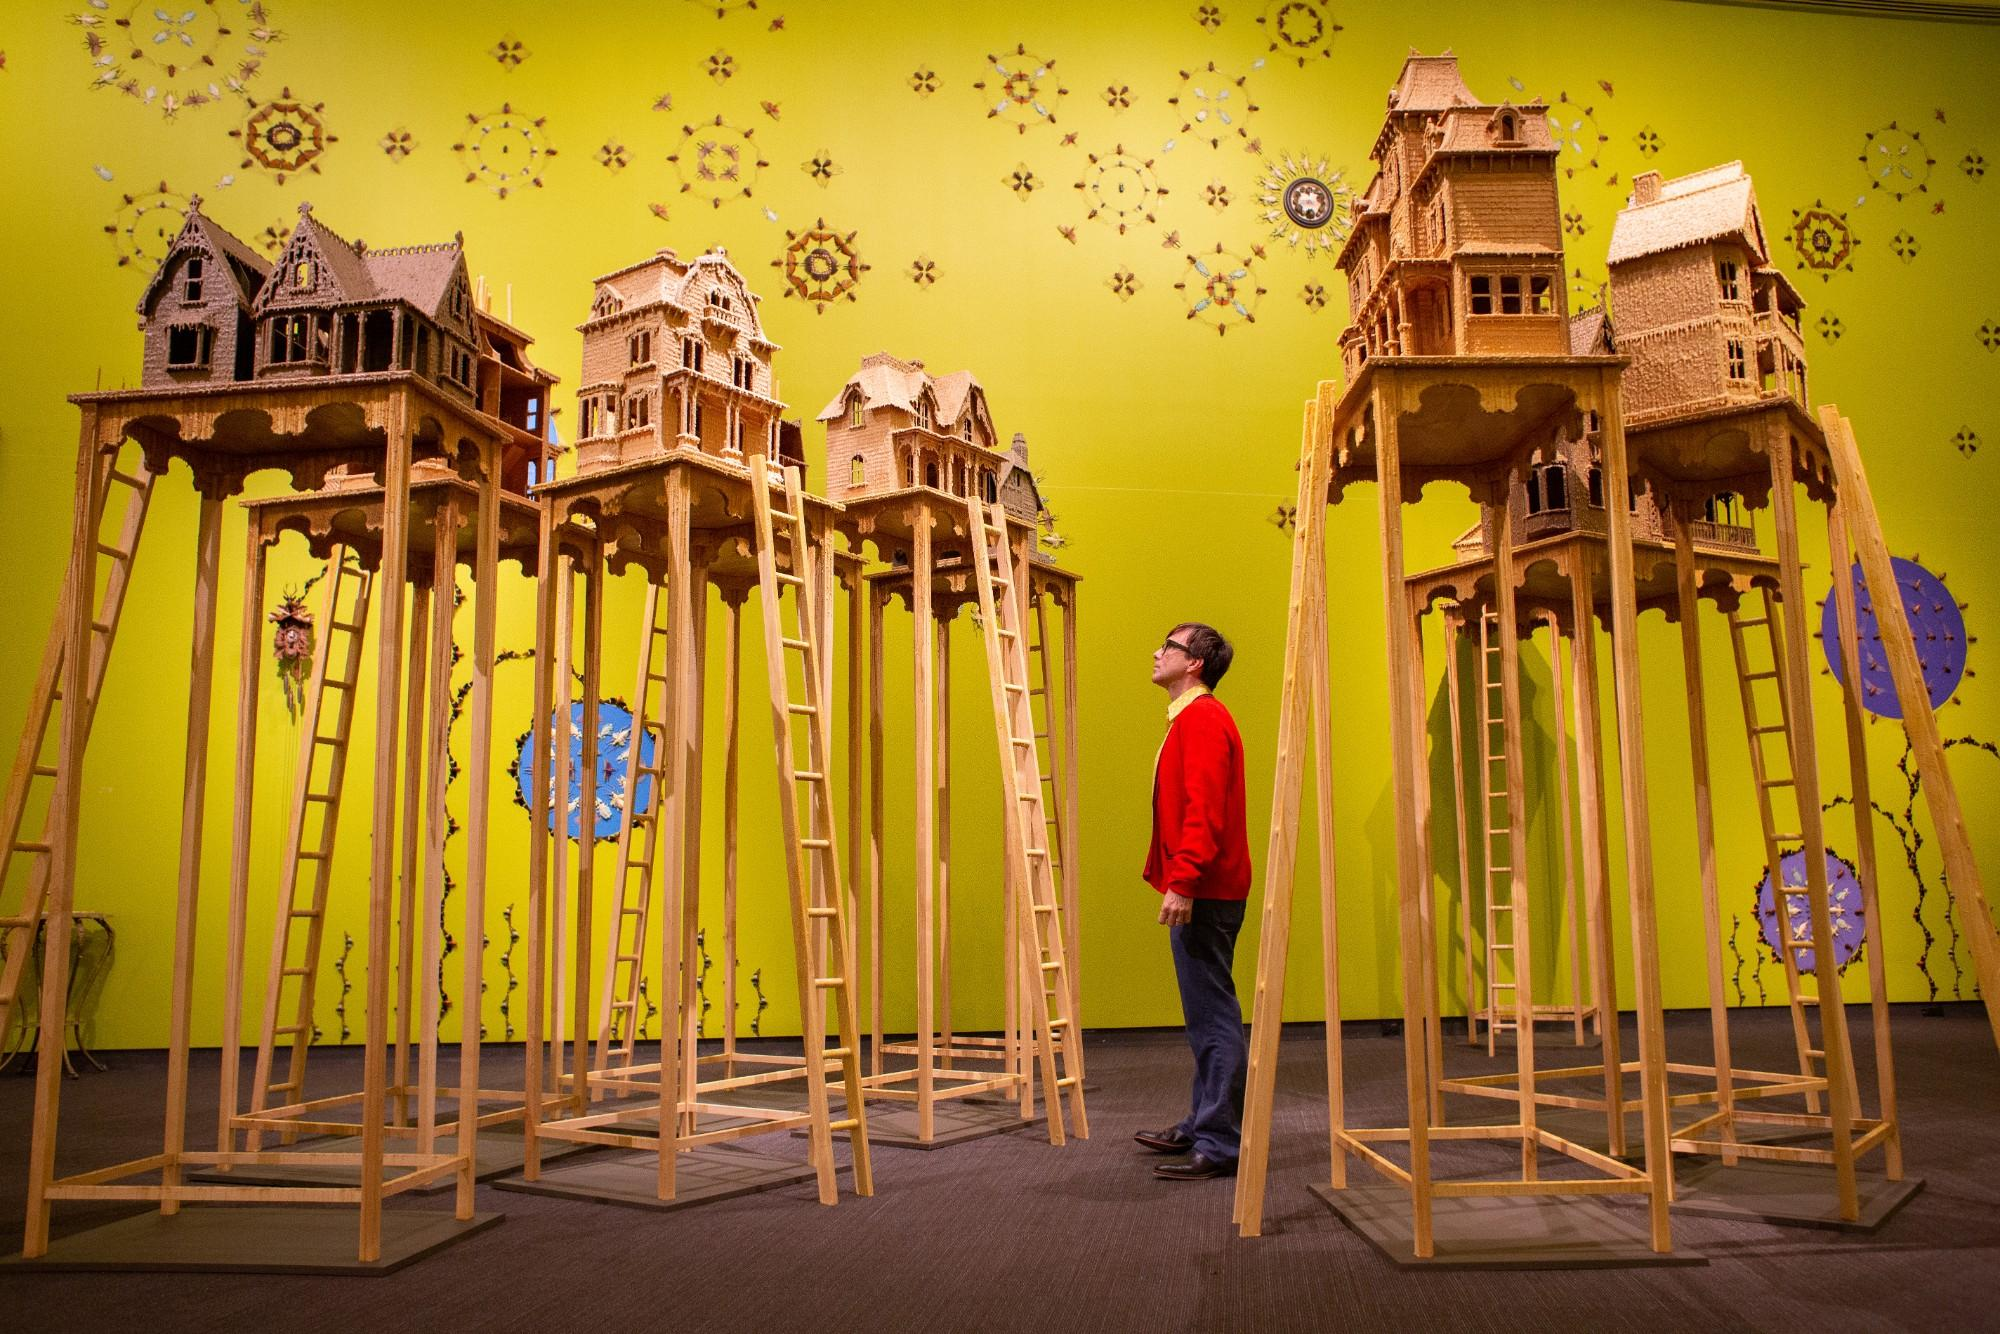 Jennifer Angus installation featuring Victorian dollhouses covered in beeswax.